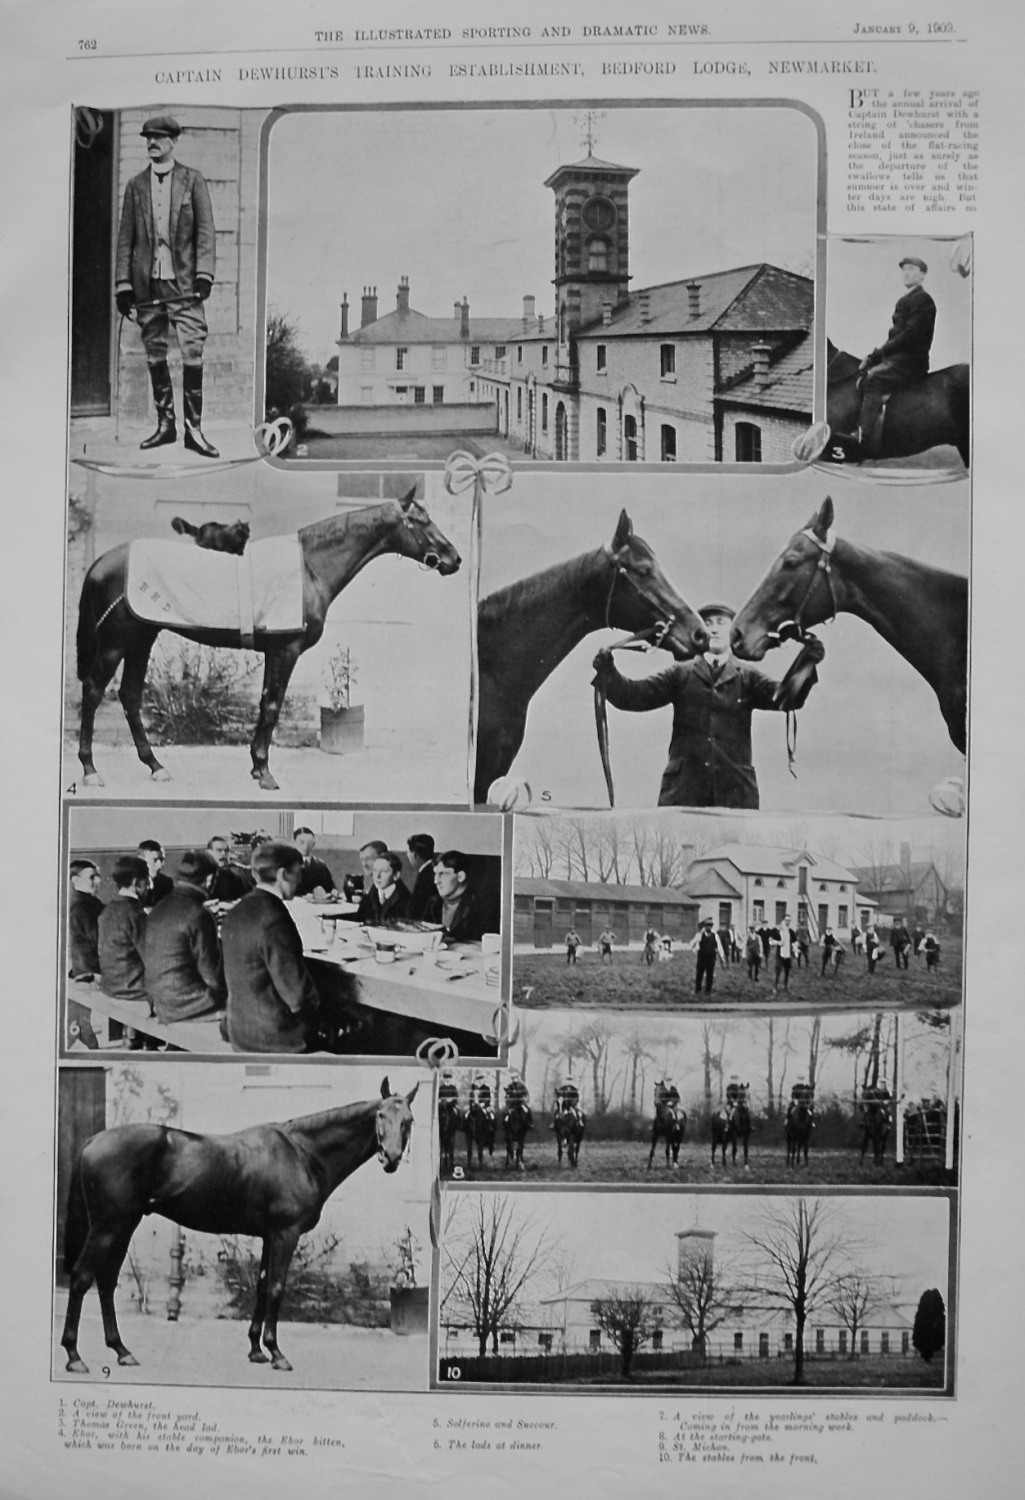 Captain Dewhurst's Training Establishment, Bedford Lodge, Newmarket. 1909